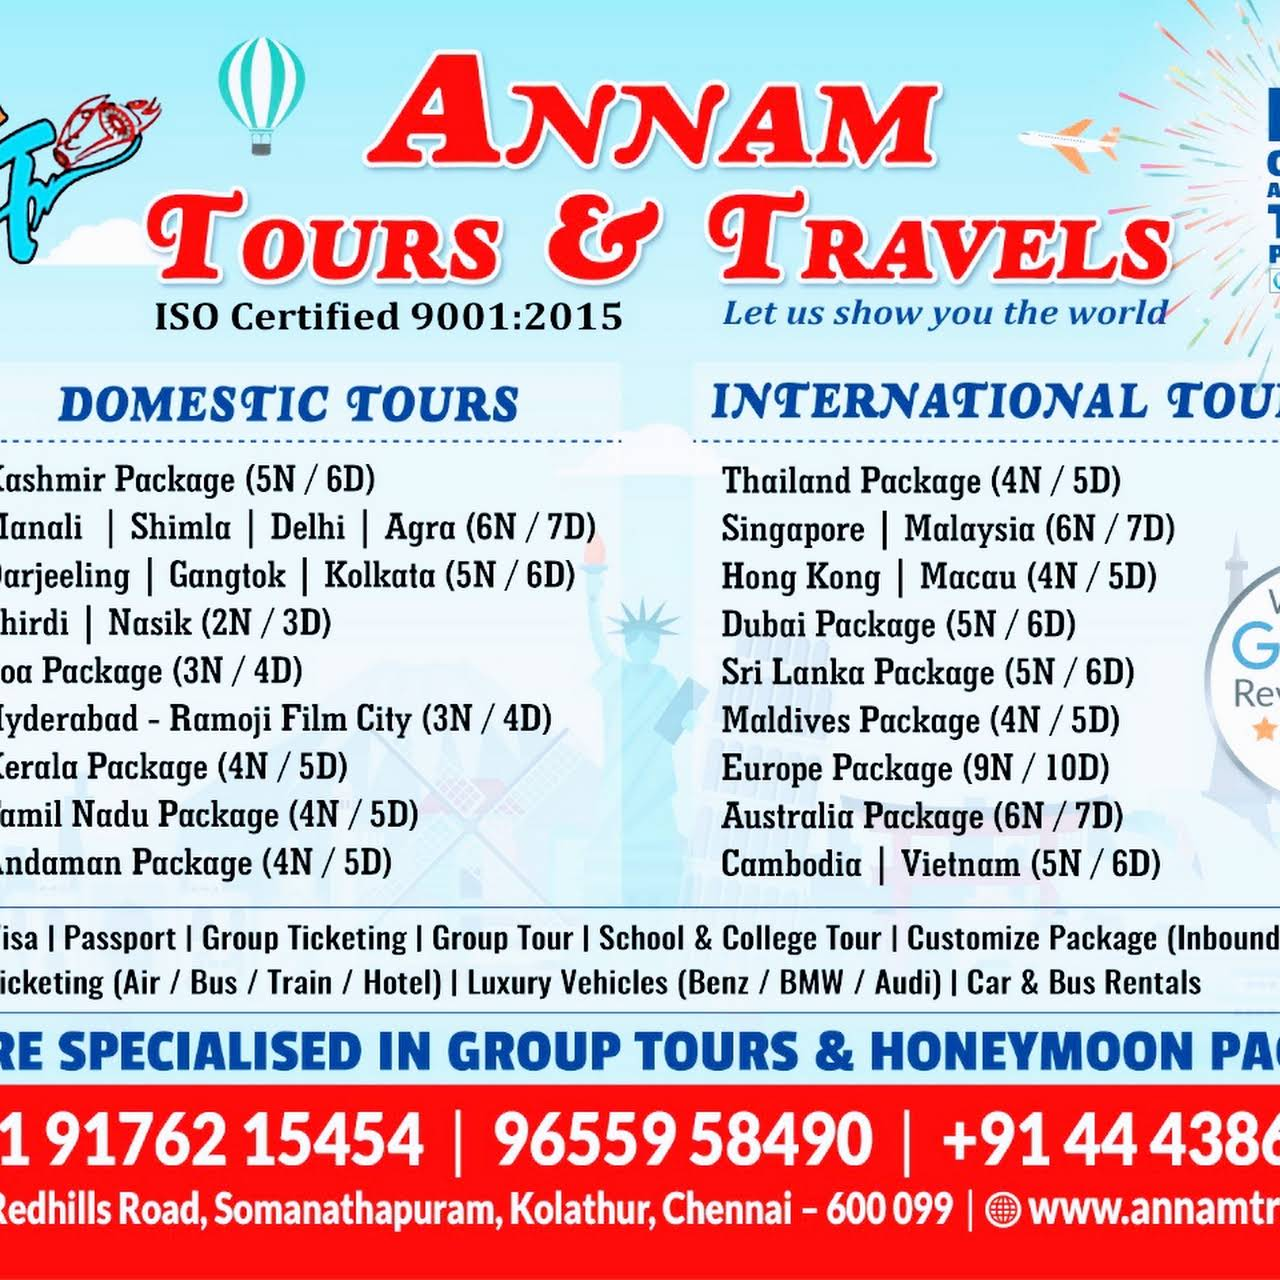 Annam Tours & Travels - Travel Agent in Chennai